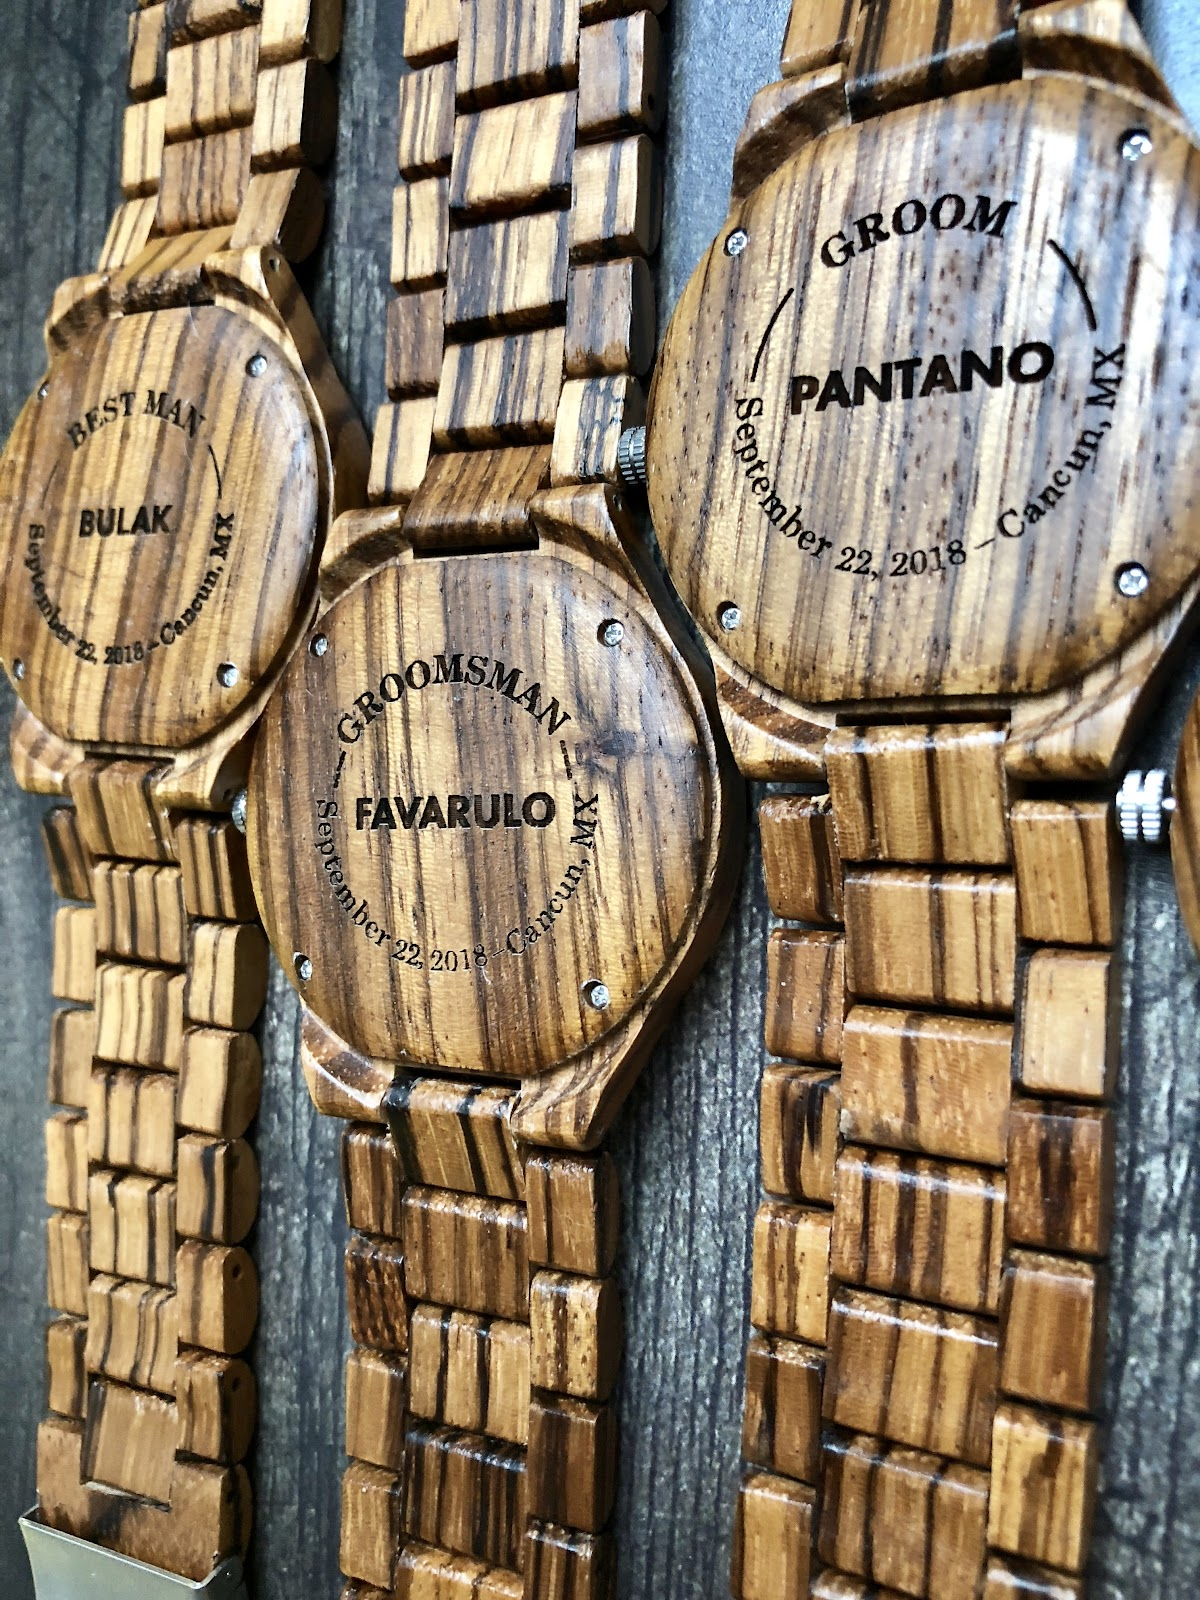 Wooden watches engraved with last name in the middle and surrounded by title, date and location.